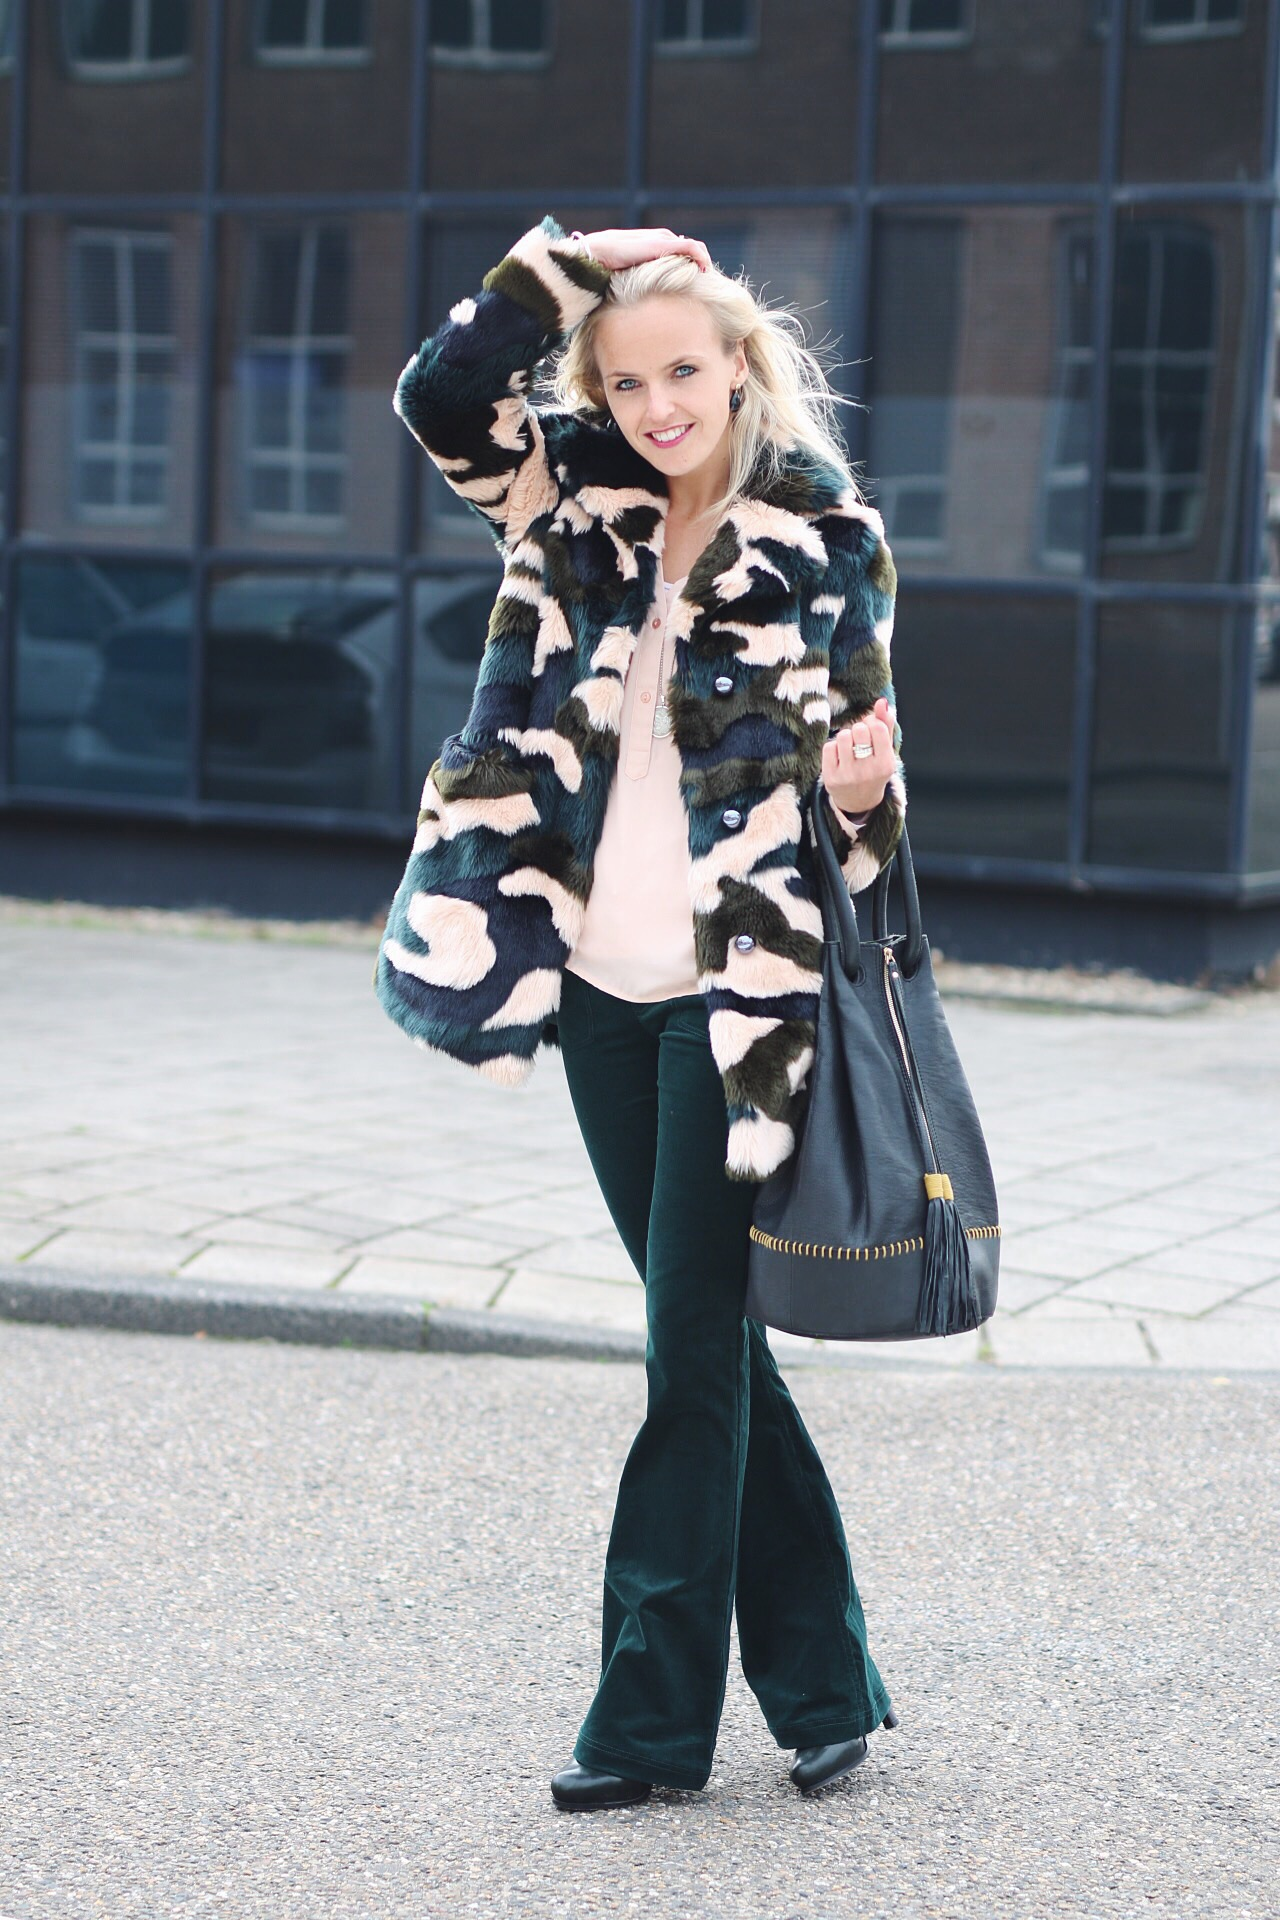 Bag at You - Fashion blog - Look Amayzine - Stieglitz Bag and Topshop Jacket